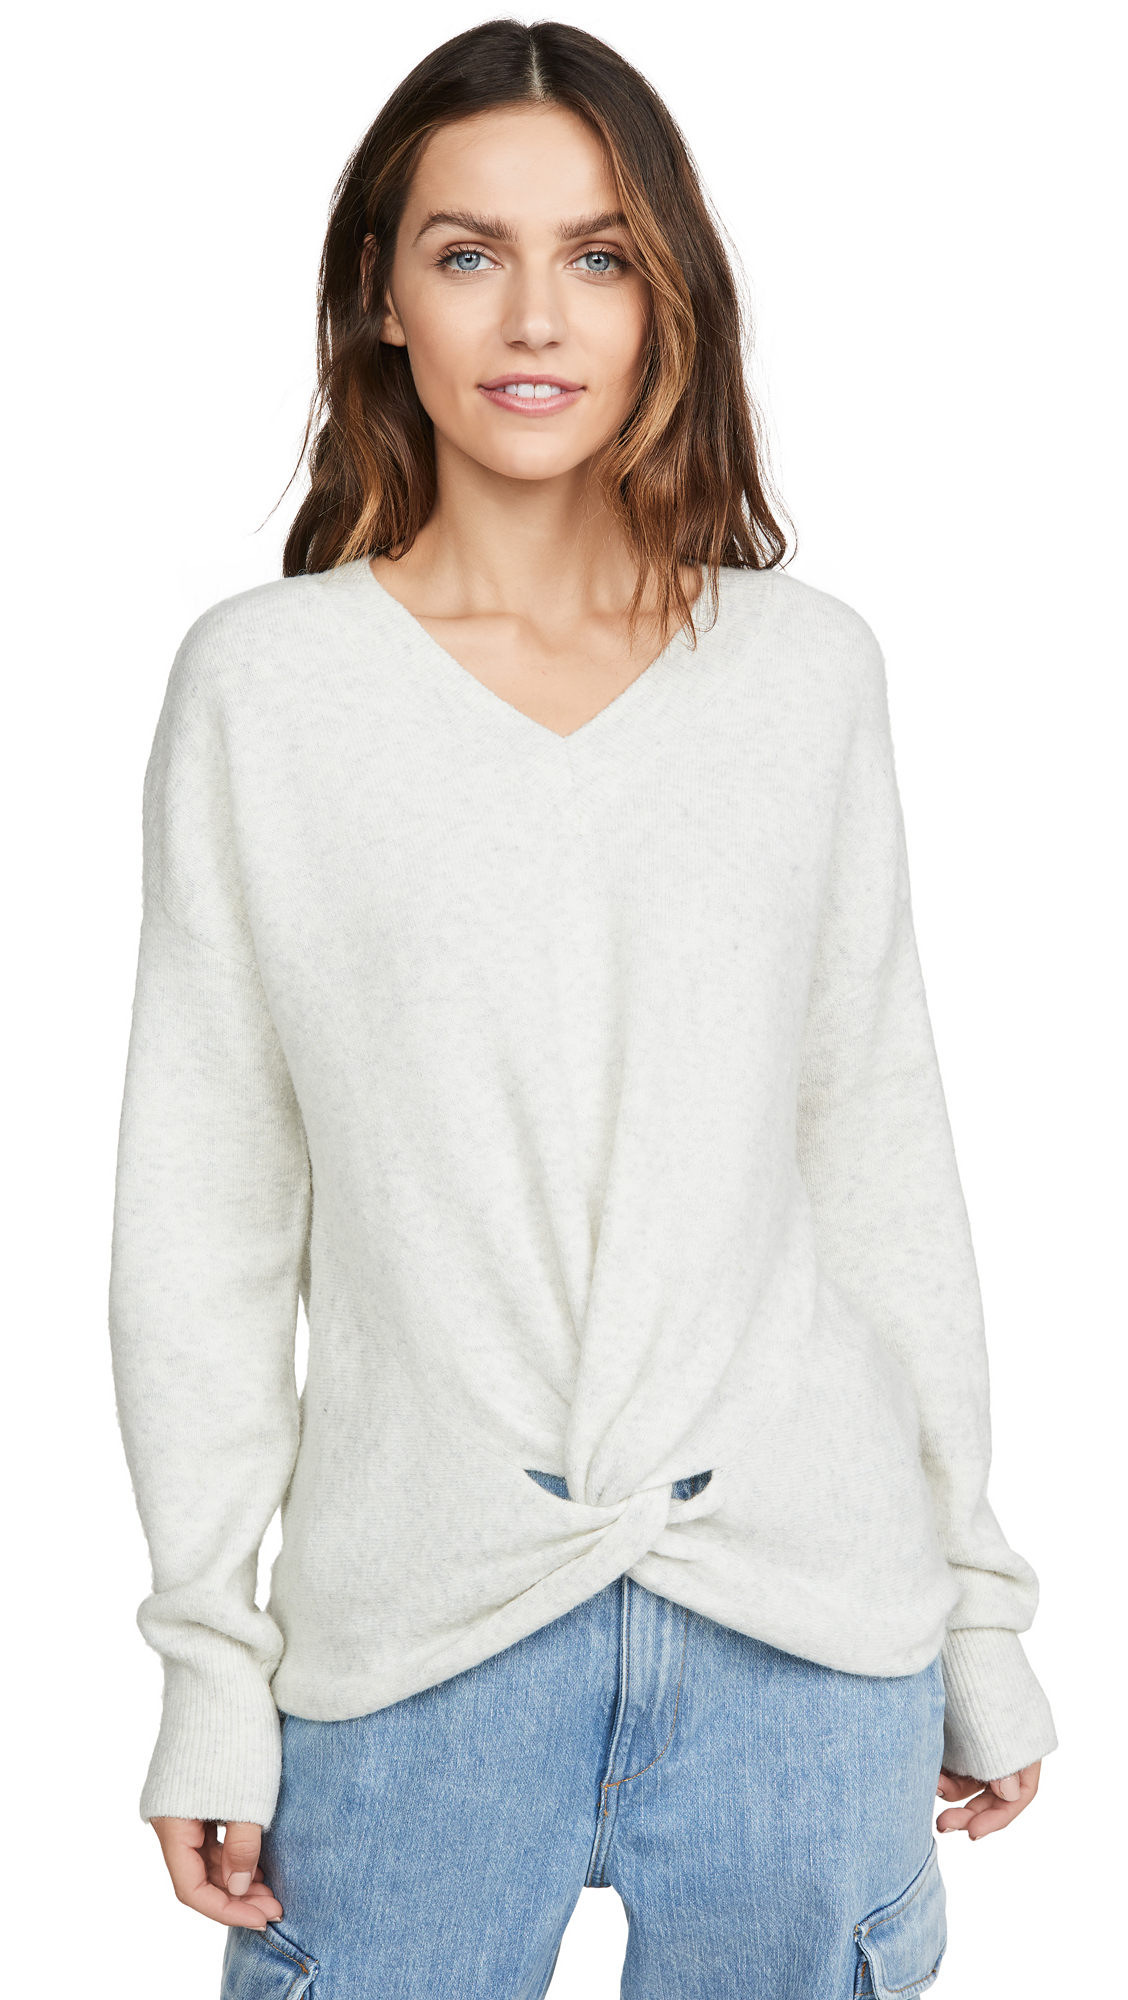 Buy Scotch & Soda/Maison Scotch online - photo of Scotch & Soda/Maison Scotch Knot Detailed Sweater